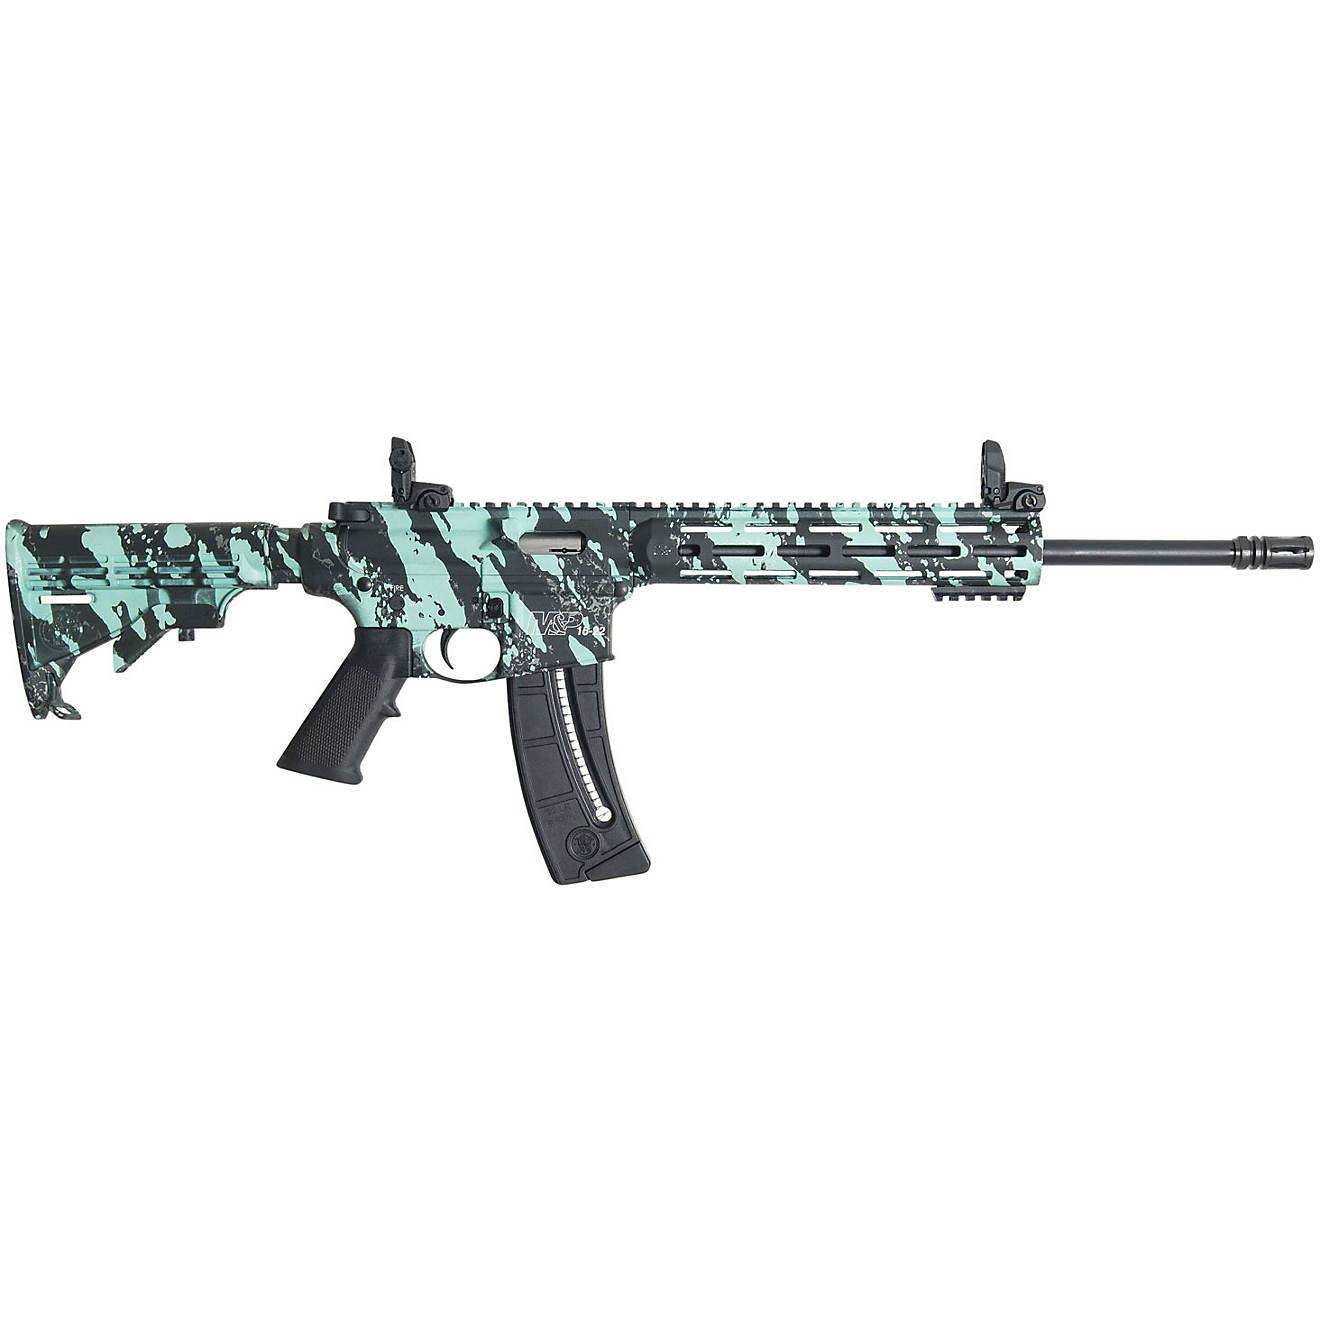 Smith & Wesson M&P 15-22 Sport .22 LR Semiautomatic Rifle